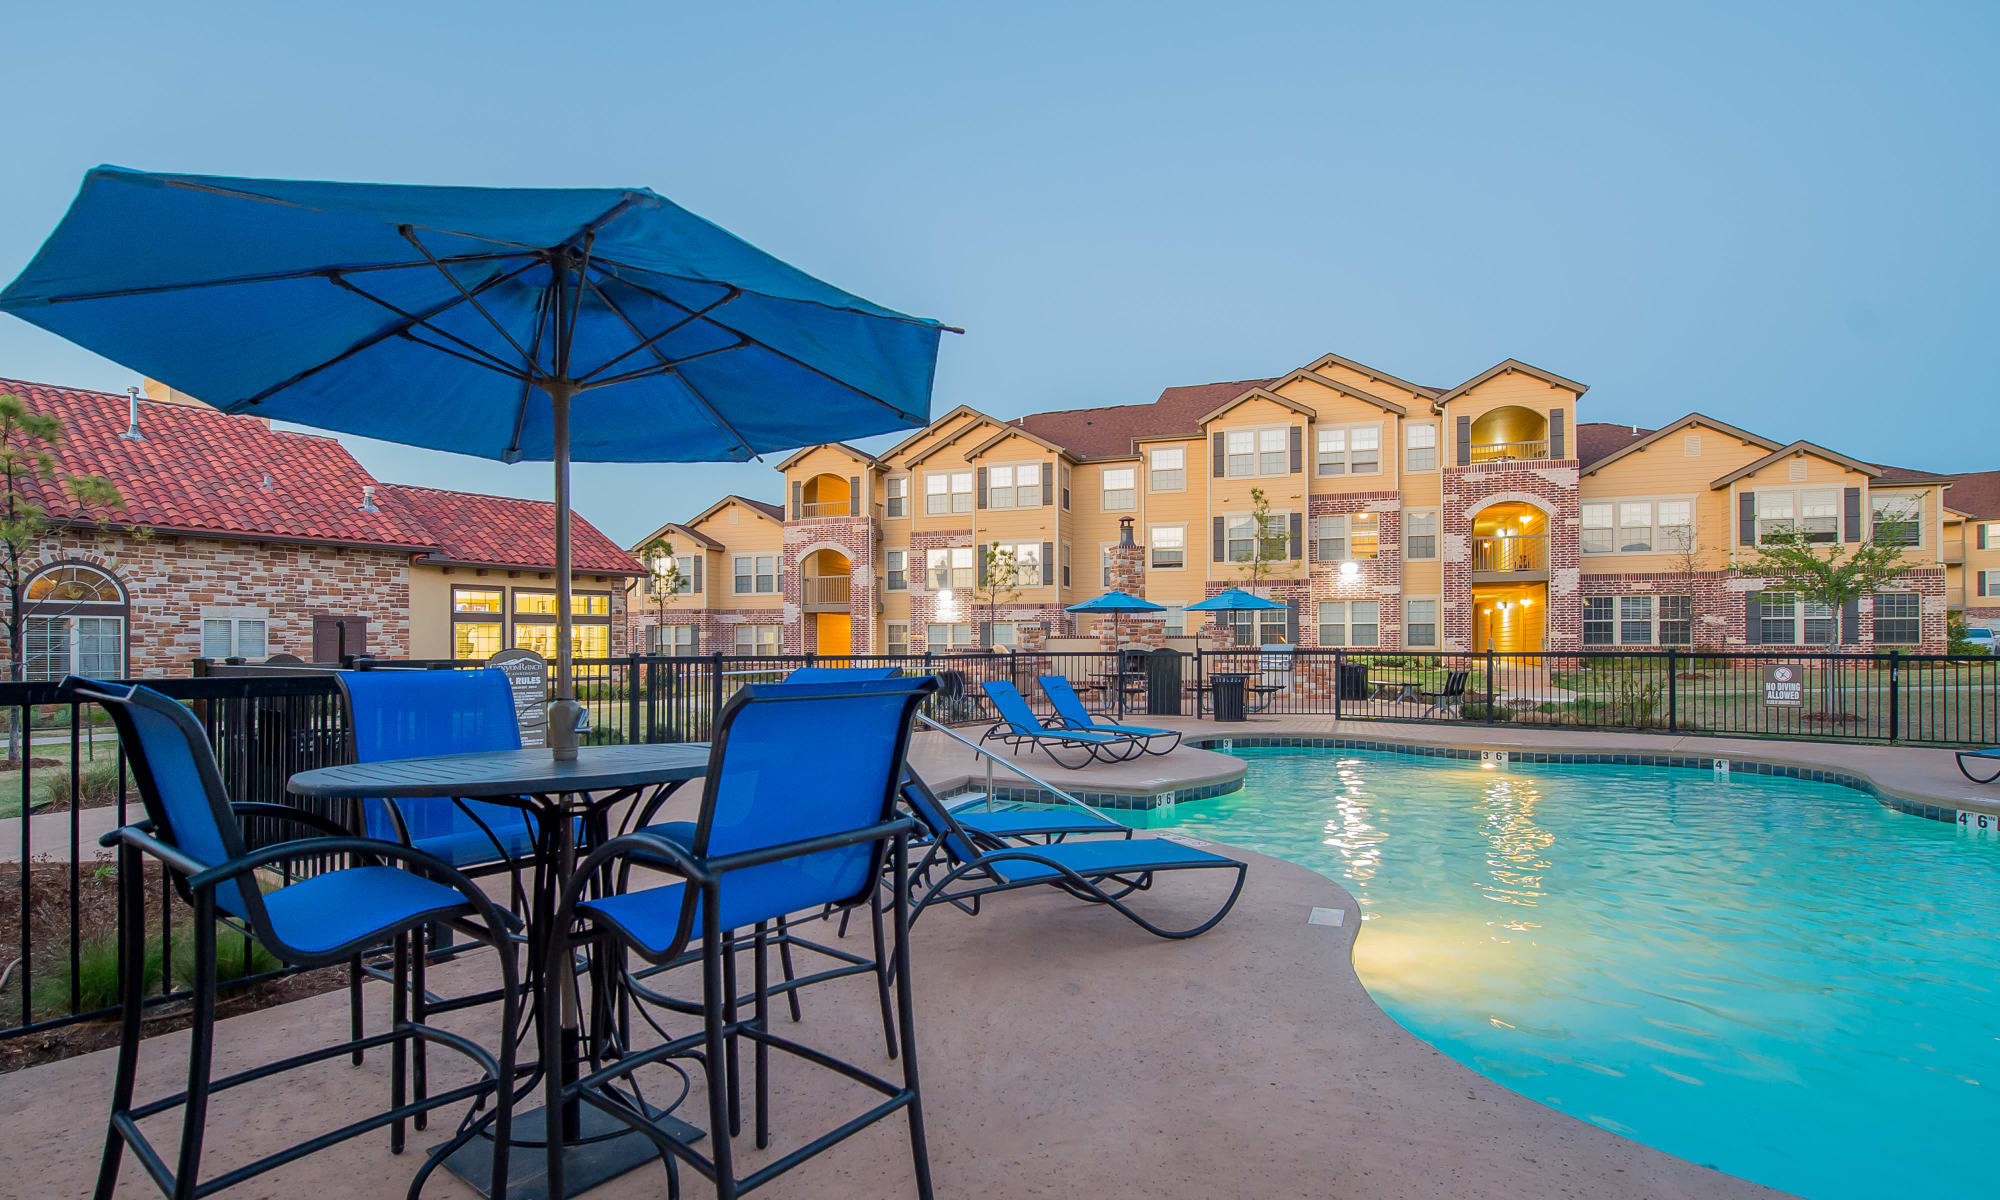 Villas at Canyon Ranch apartments in Yukon, Oklahoma